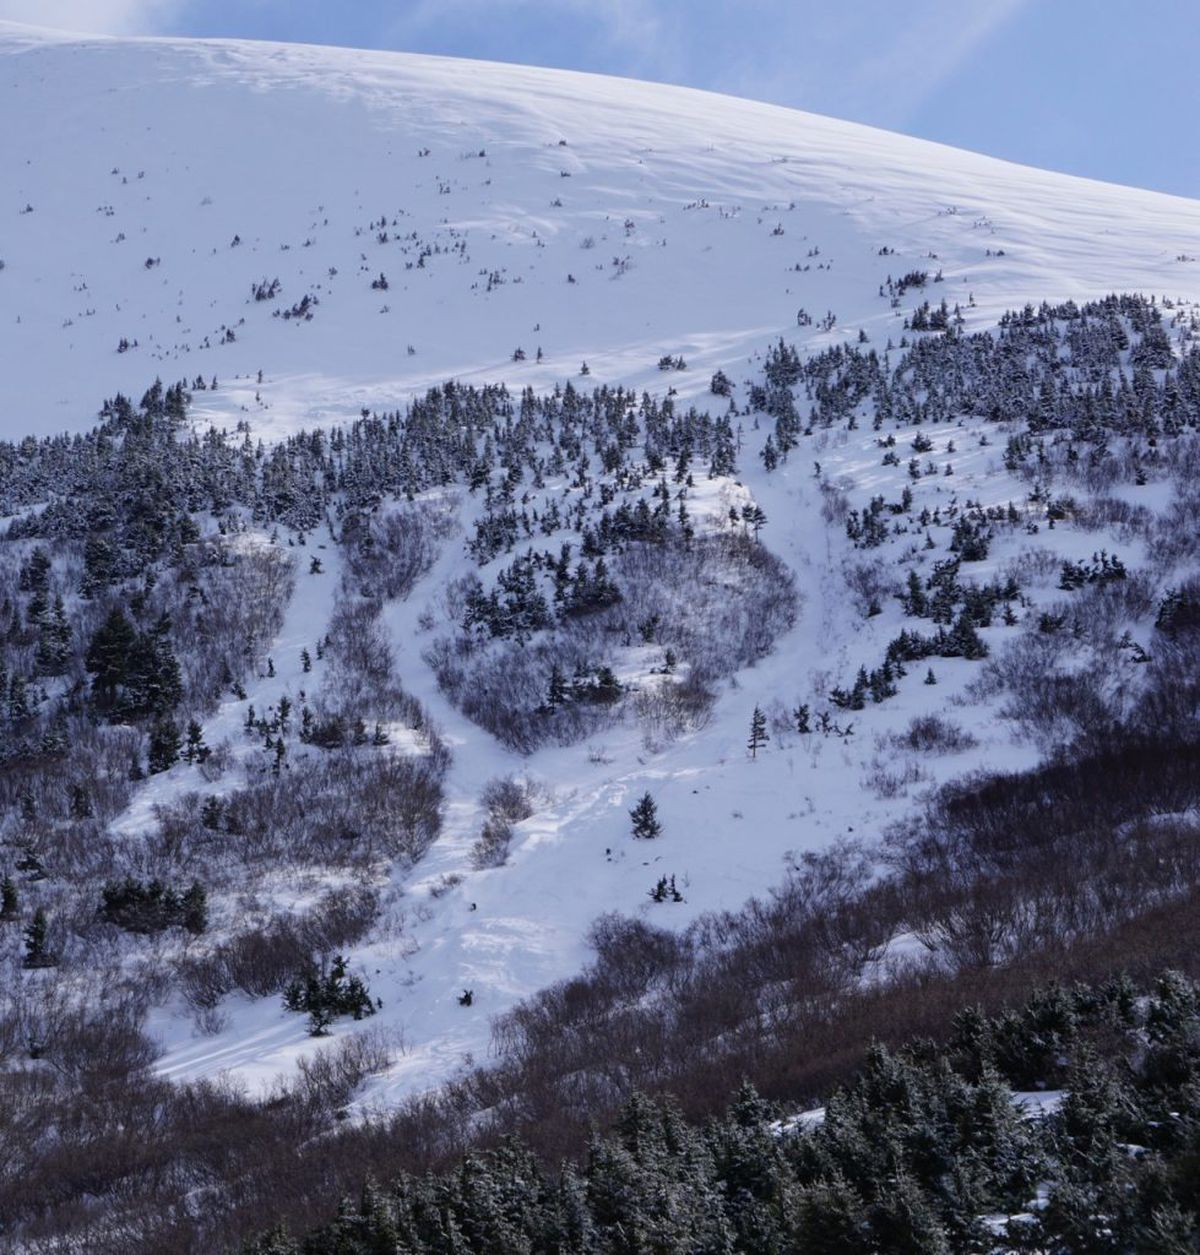 The avalanche that occurred on March 9, 2019, on a slope off Madson Mountain just above Crescent Lake killed 33-year-old backcountry skier Jeffrey Cheng, of Anchorage. Three days later, when this photo was taken, the crown of the avalanche was completely blown in. Based on a description from the parties involved, the crown was in the peppered trees above the treeline and the avalanche ran in three channels of debris. (Courtesy Chugach National Forest Avalanche Information Center)